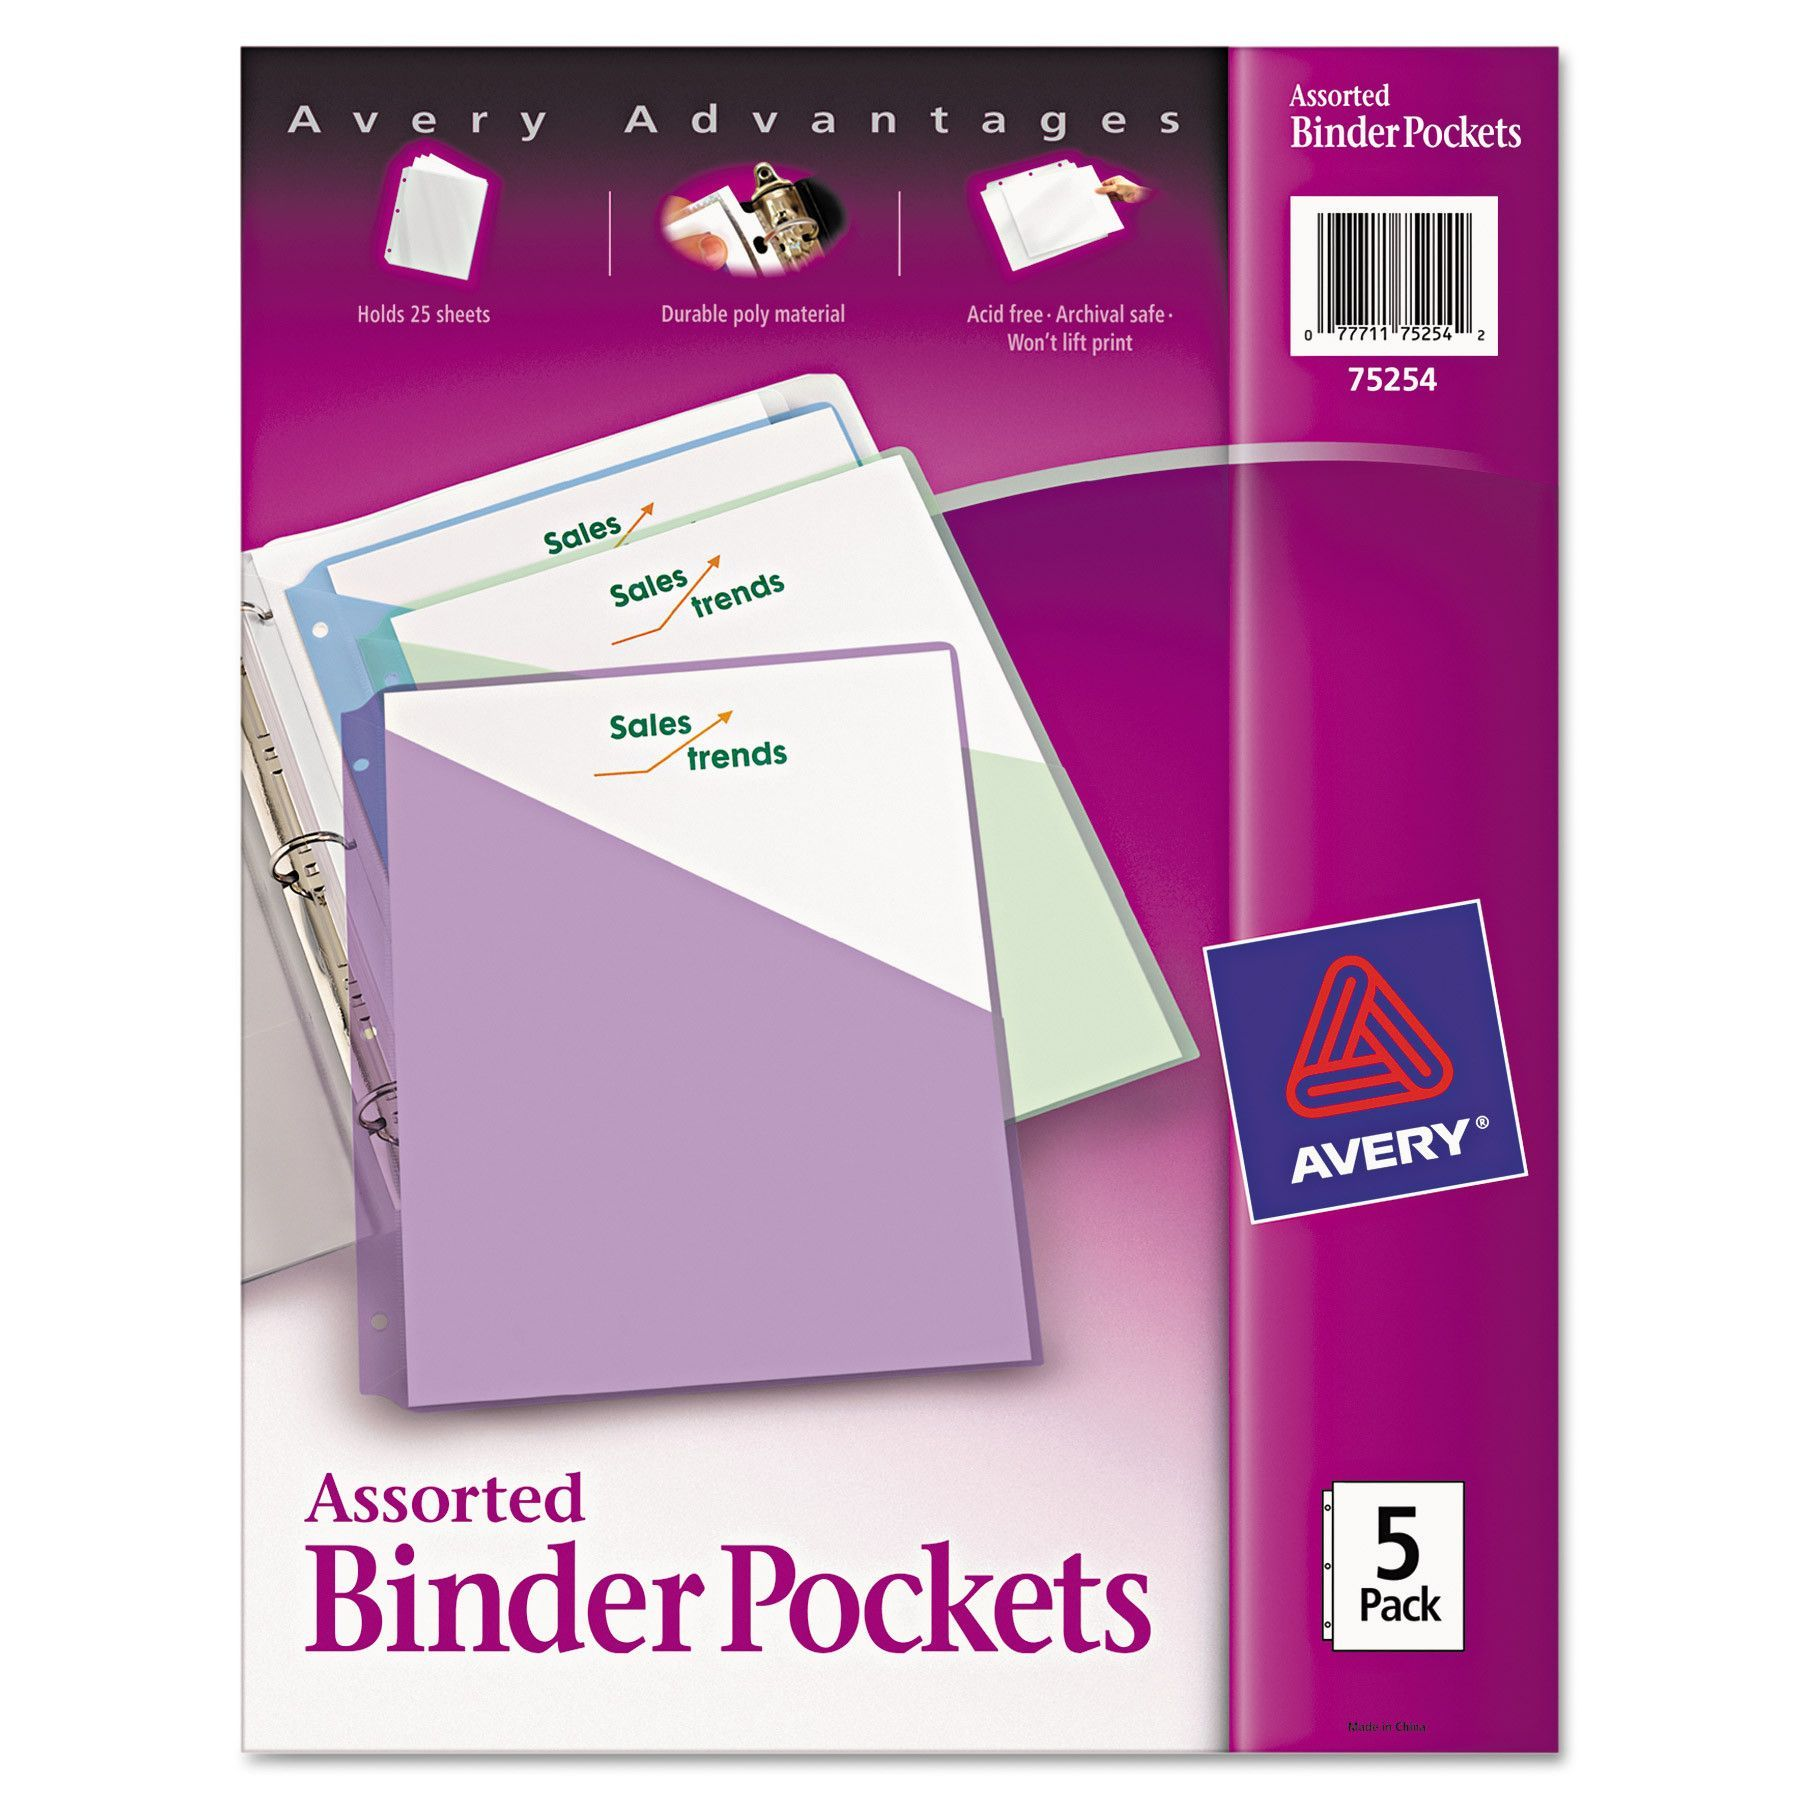 Avery 3 Hole Punched Binder Pockets Assorted Colors 9 1 4